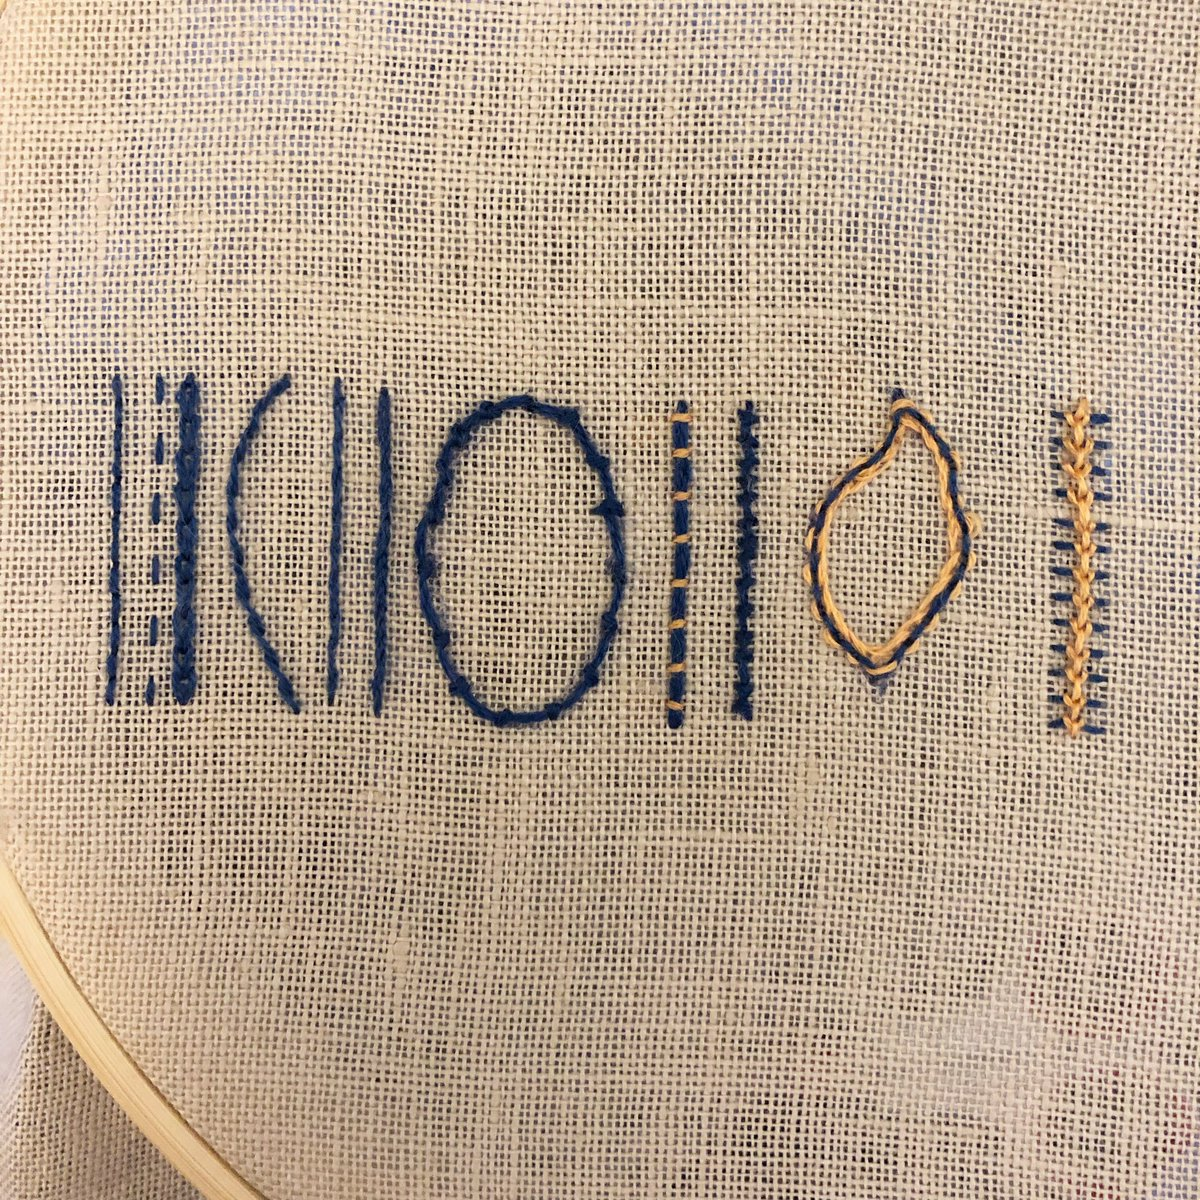 Nathania Johnson On Twitter I M Making A Stitch Sampler This Section Is Outline Stitches From Left To Right Back Stitch Running Stitch Chain Stitch Stem Stitch Split Stitch Quaker Stitch Coral Stitch